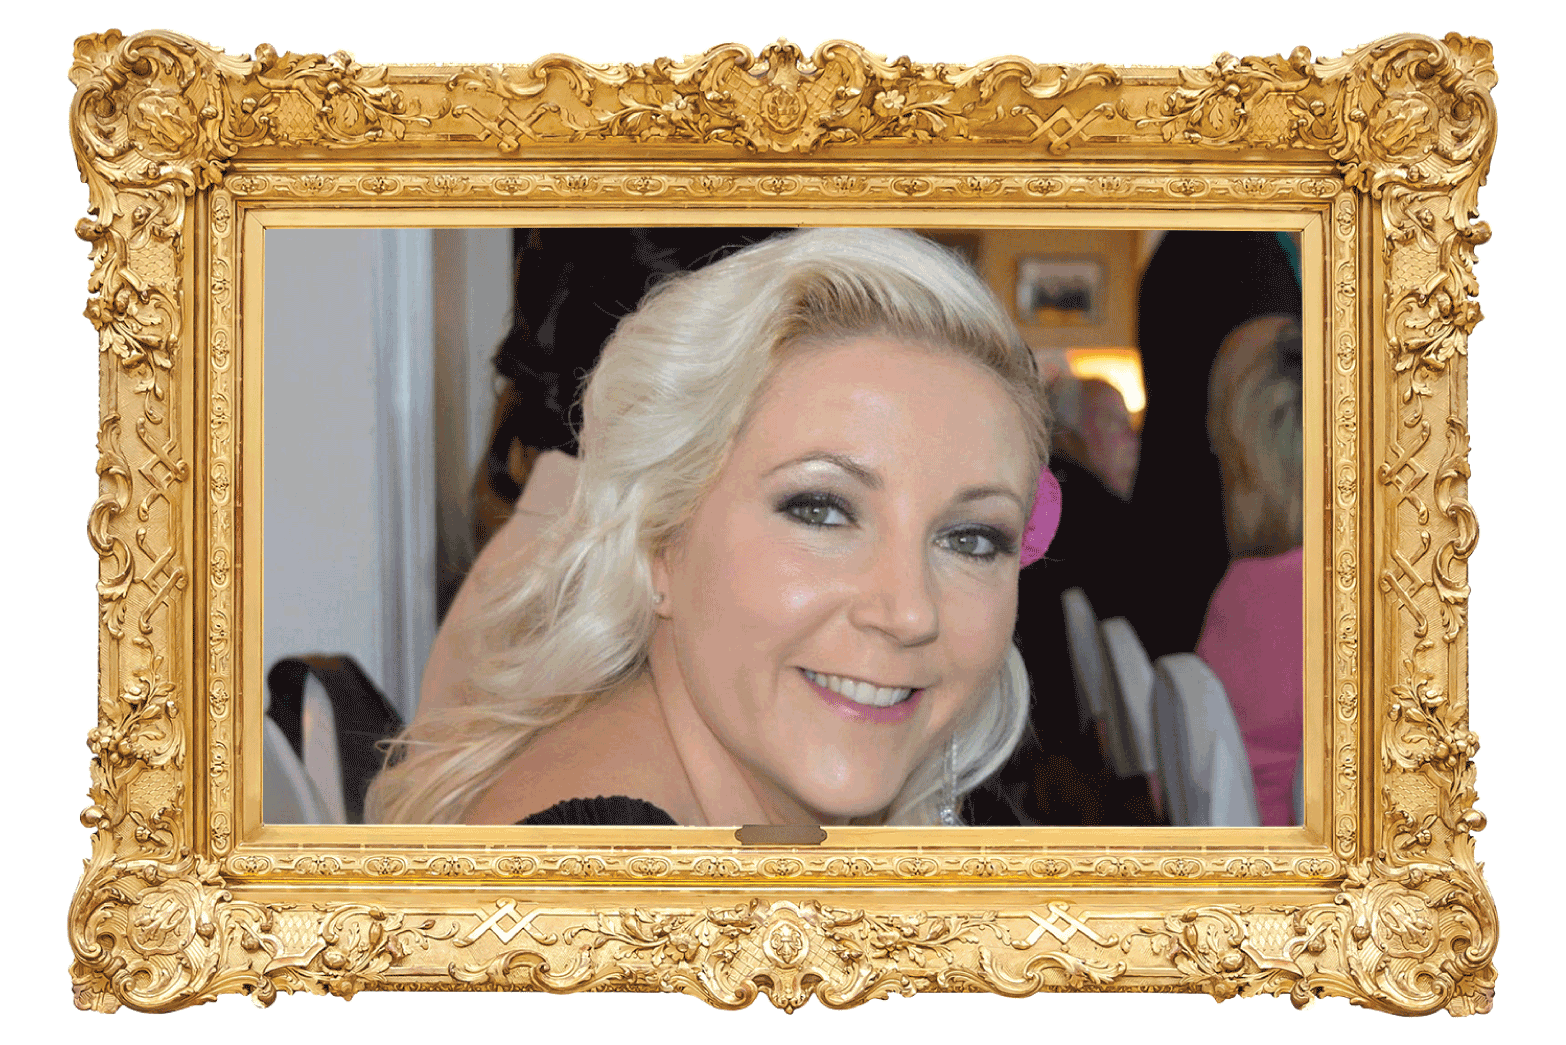 Eve Anderson Beauty Therapist at Clarity House in Dunfermline